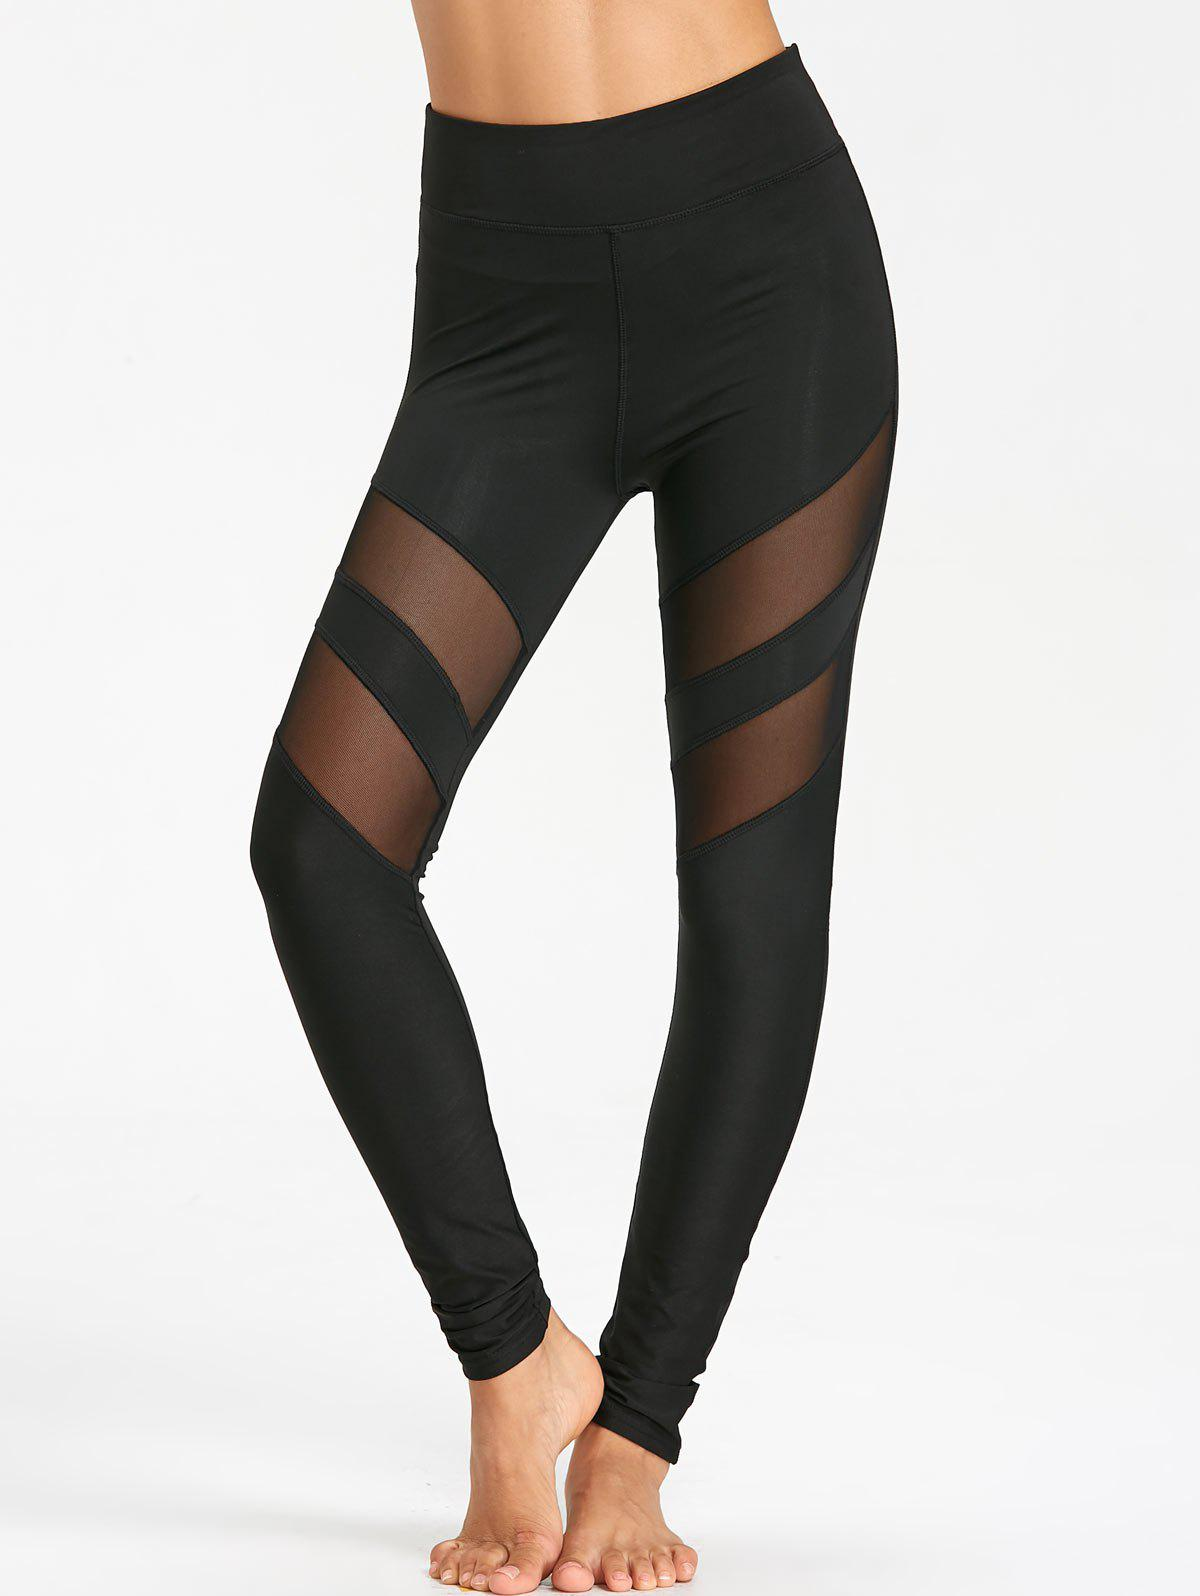 Shop High Waist Workout Leggings With Mesh Panel